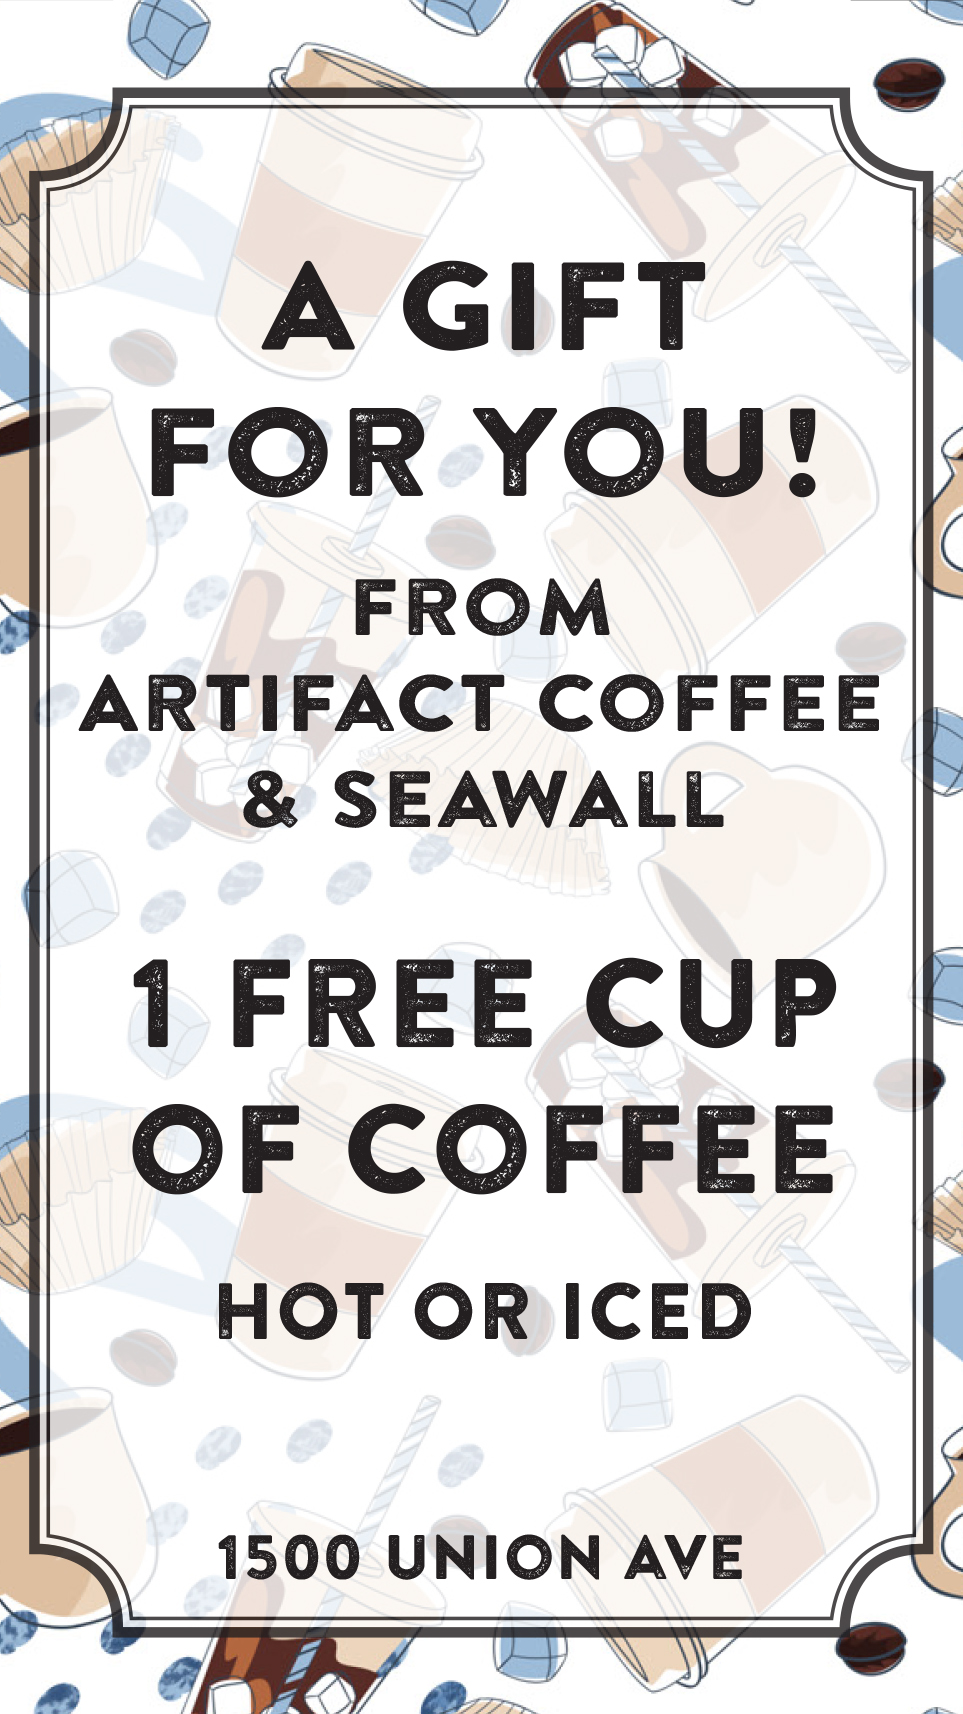 Card for Artifact Coffee  Pattern & Design